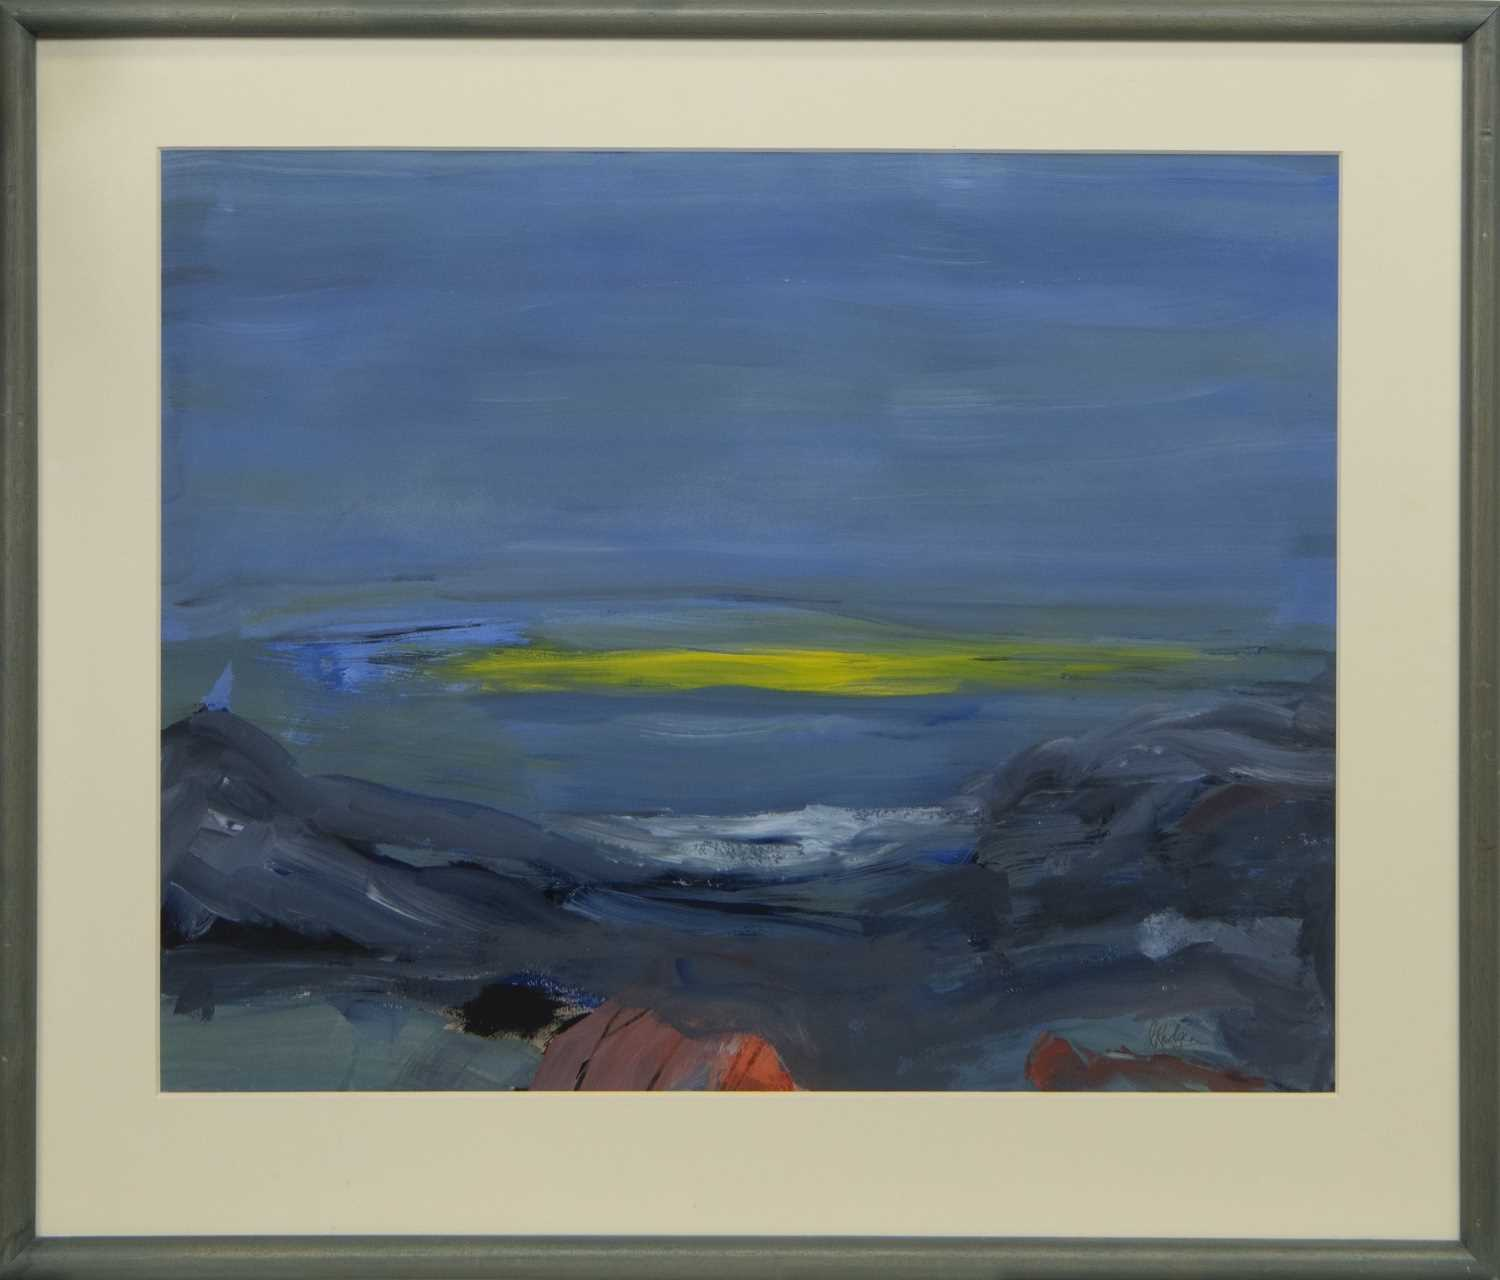 Lot 565 - SOLWAY SUNSET, A GOUACHE BY JEAN RODGER